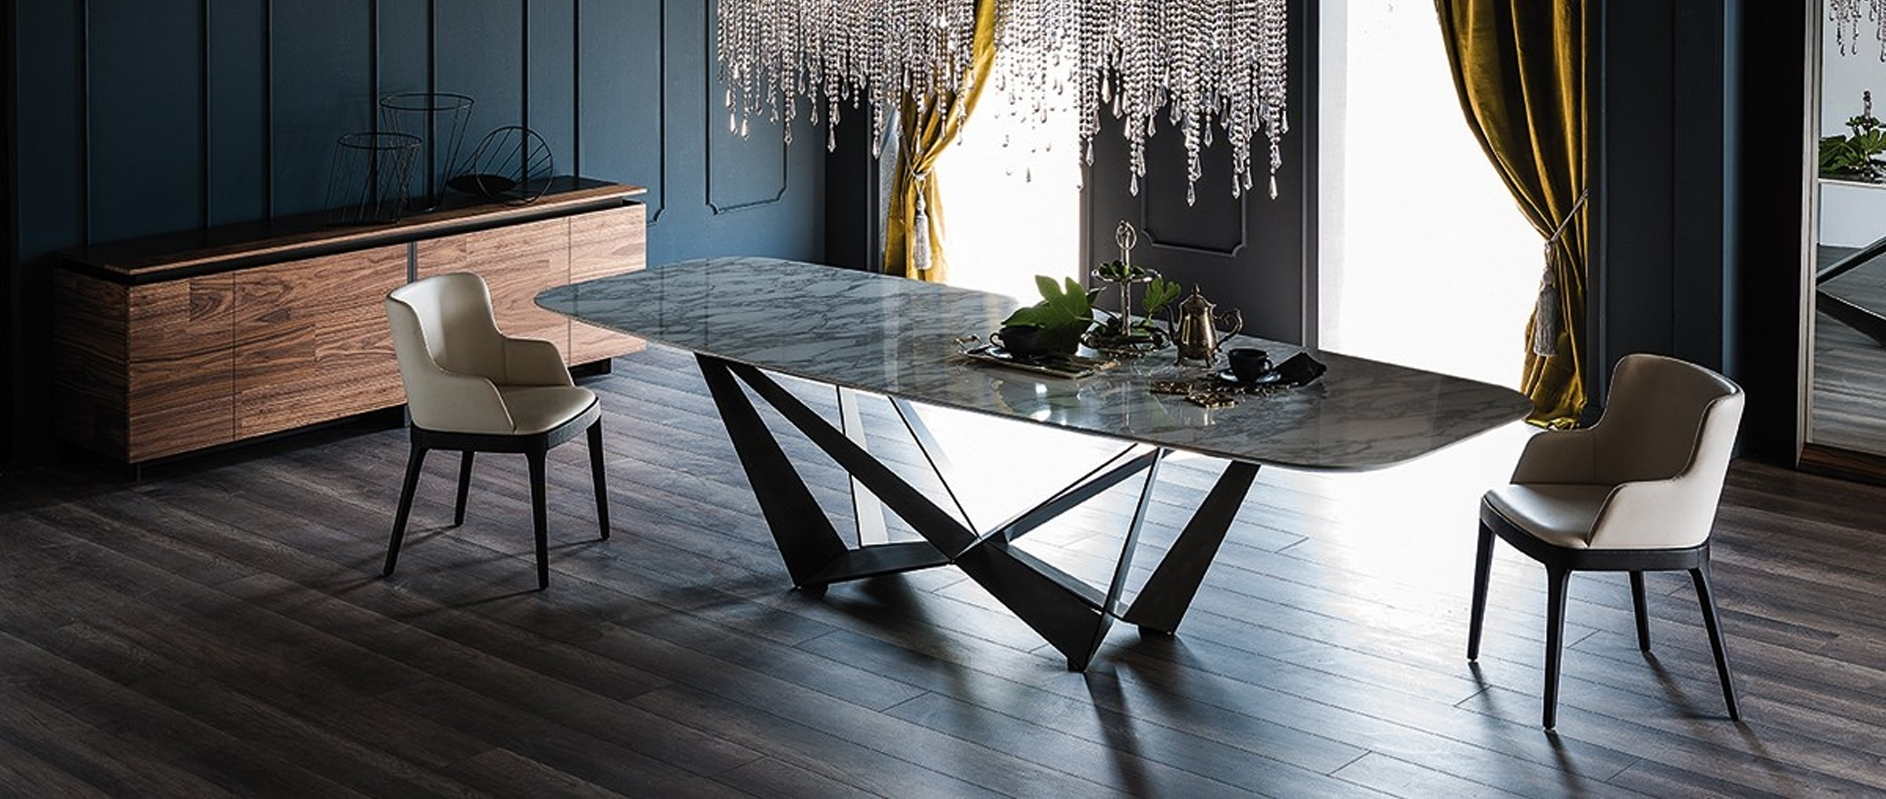 Contemporary Dining Furniture Throughout Well Liked Dining Room Contemporary Glass Dining Table Set Small Modern Dining (View 8 of 25)